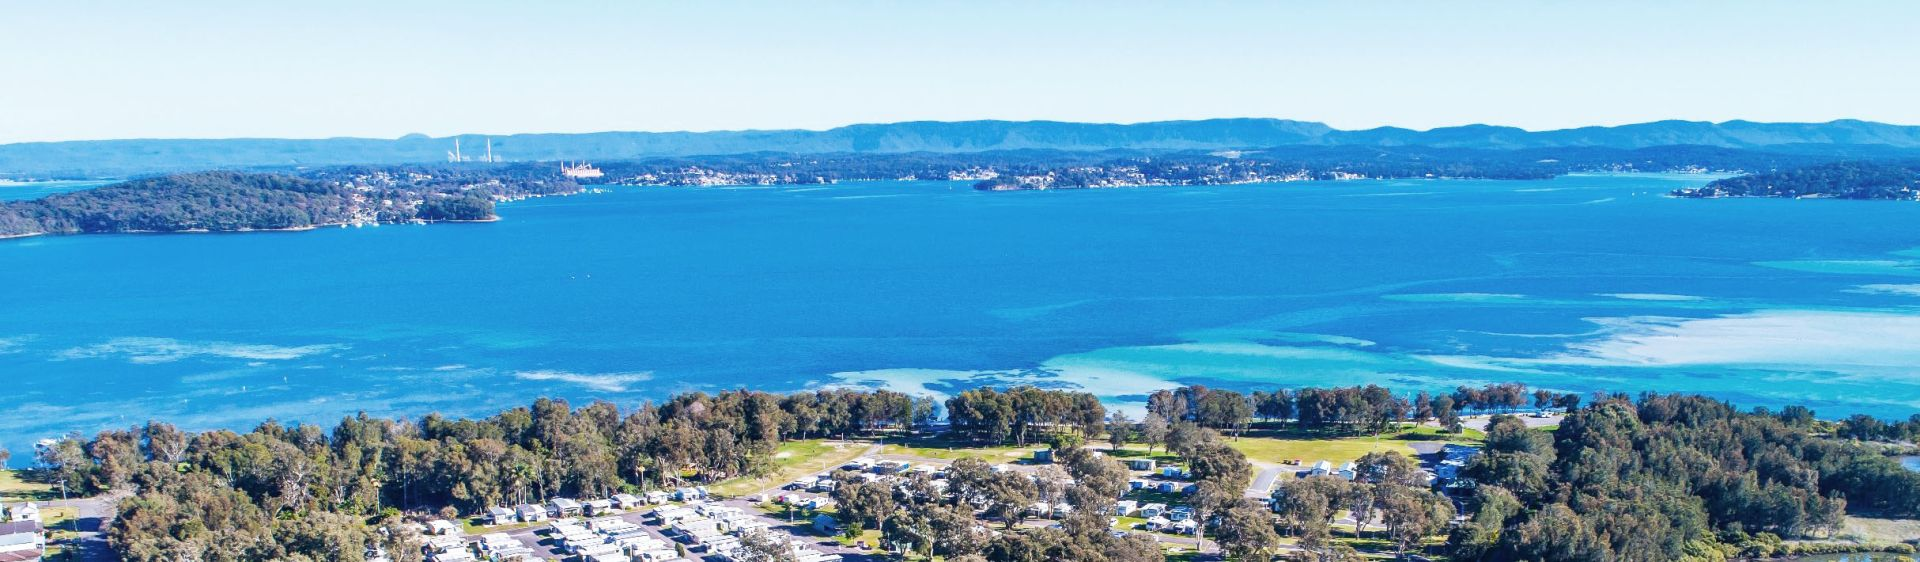 Aerial view of Swansea Channel, Lake Macquarie